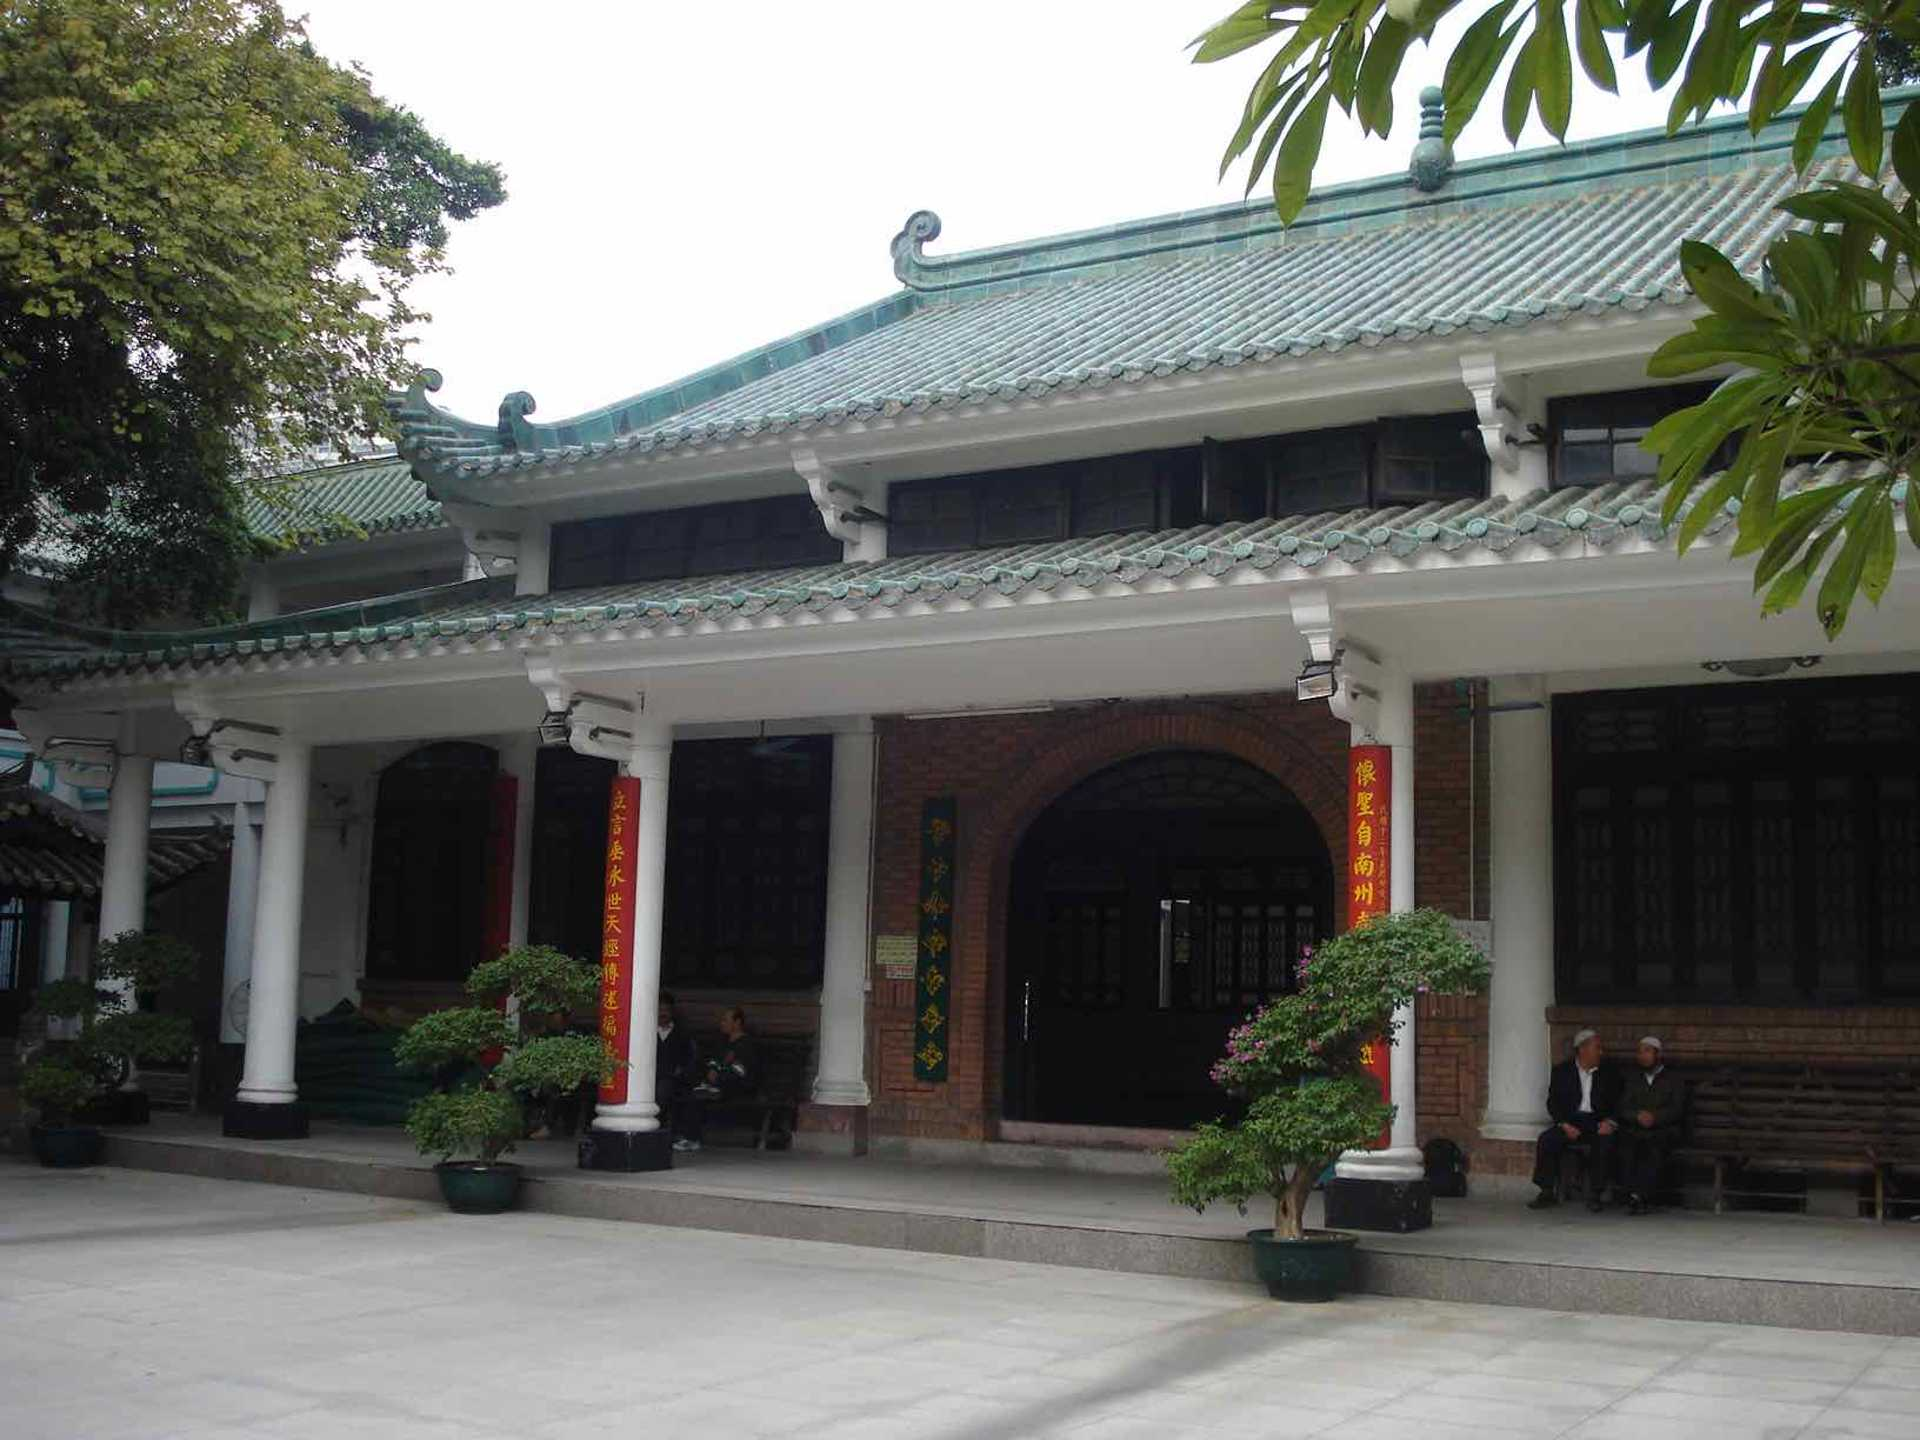 The Huaisheng is believe to be one of the oldest mosques in the world.